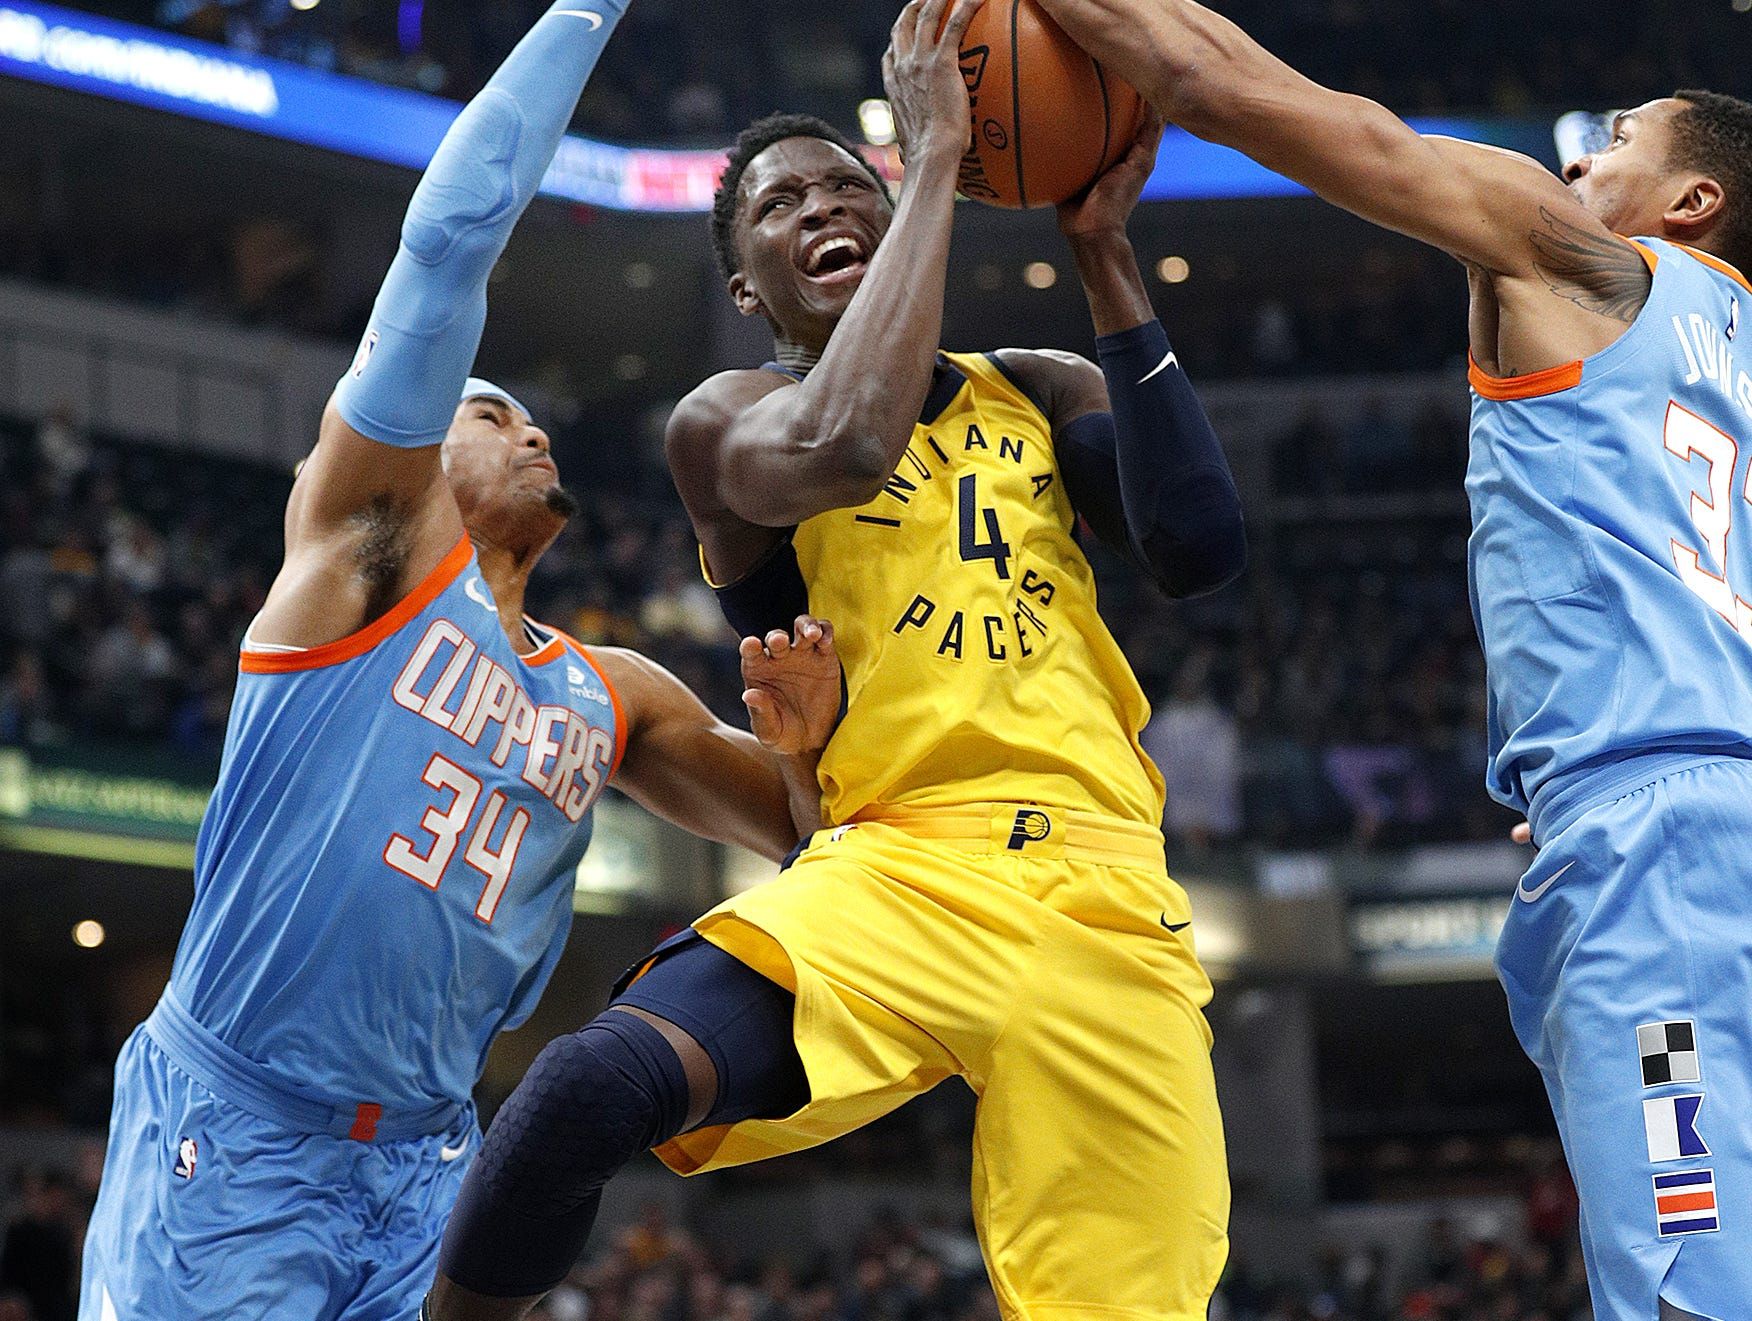 Indiana Pacers guard Victor Oladipo (4) drives by LA Clippers forward Tobias Harris (34) and Wesley Johnson (33) in the first half of their game at Bankers Life Fieldhouse on Friday, March 23, 2018.